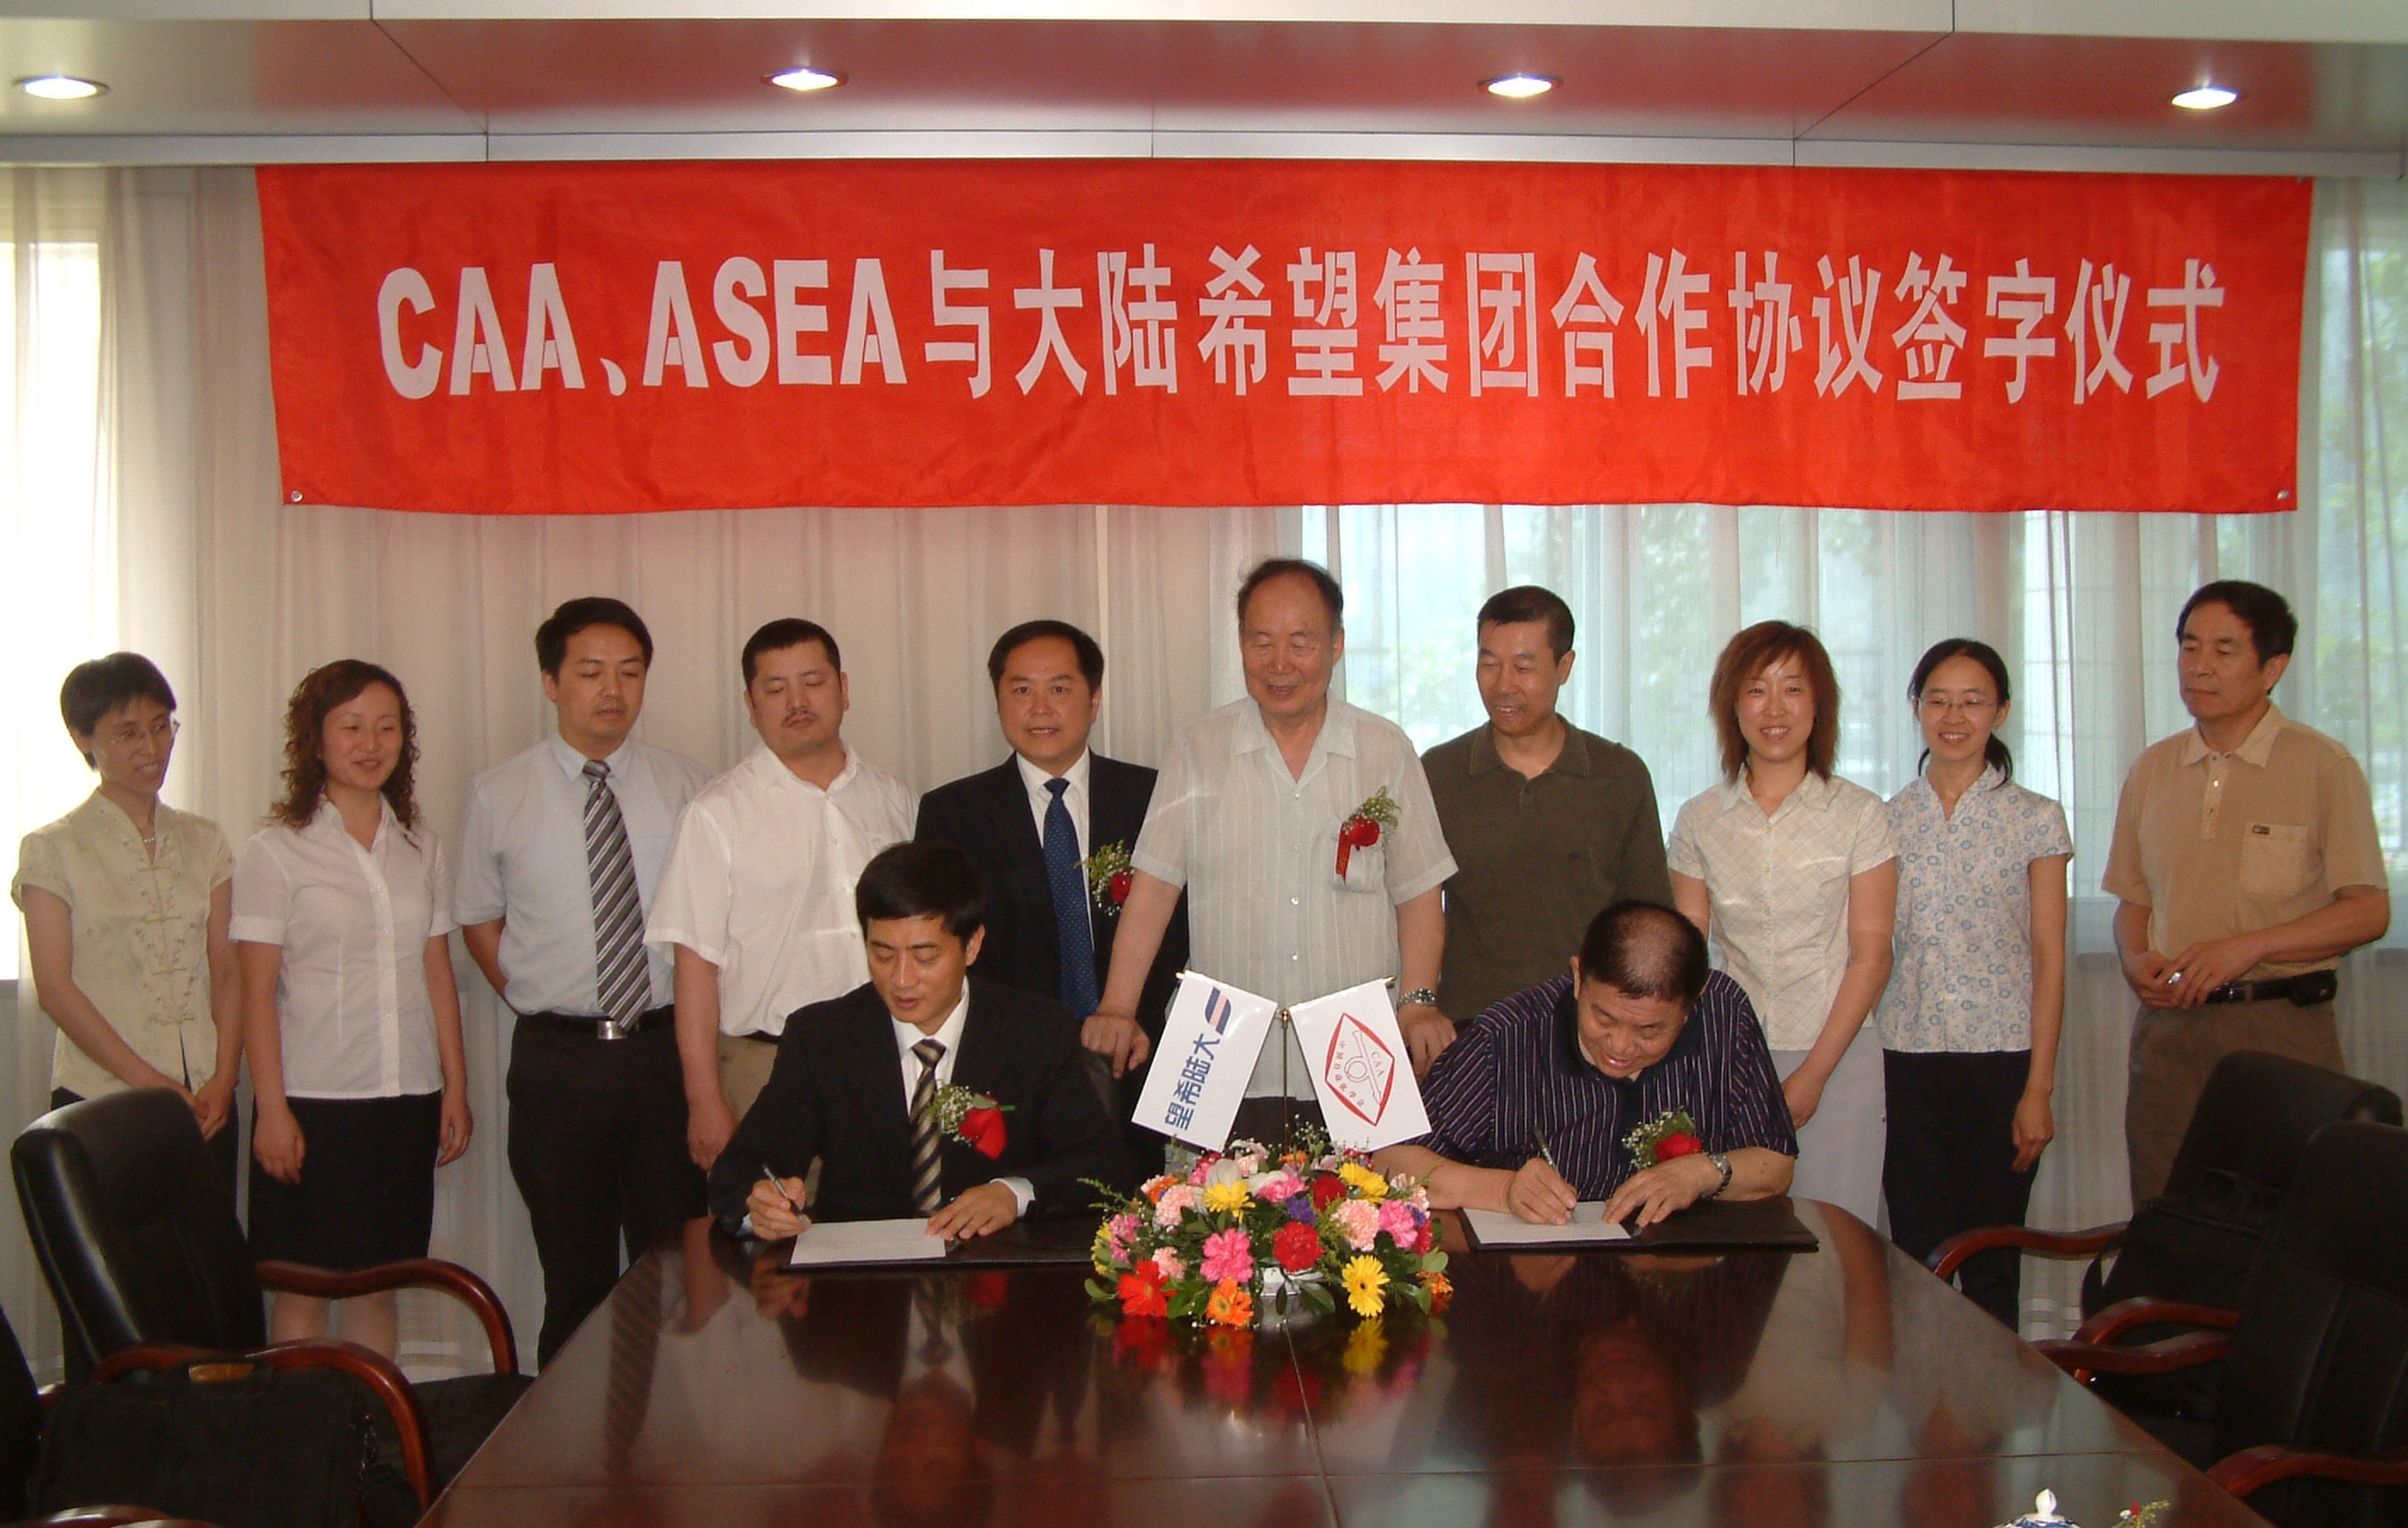 A cooperation agreement signing ceremony with the CAA ASEA